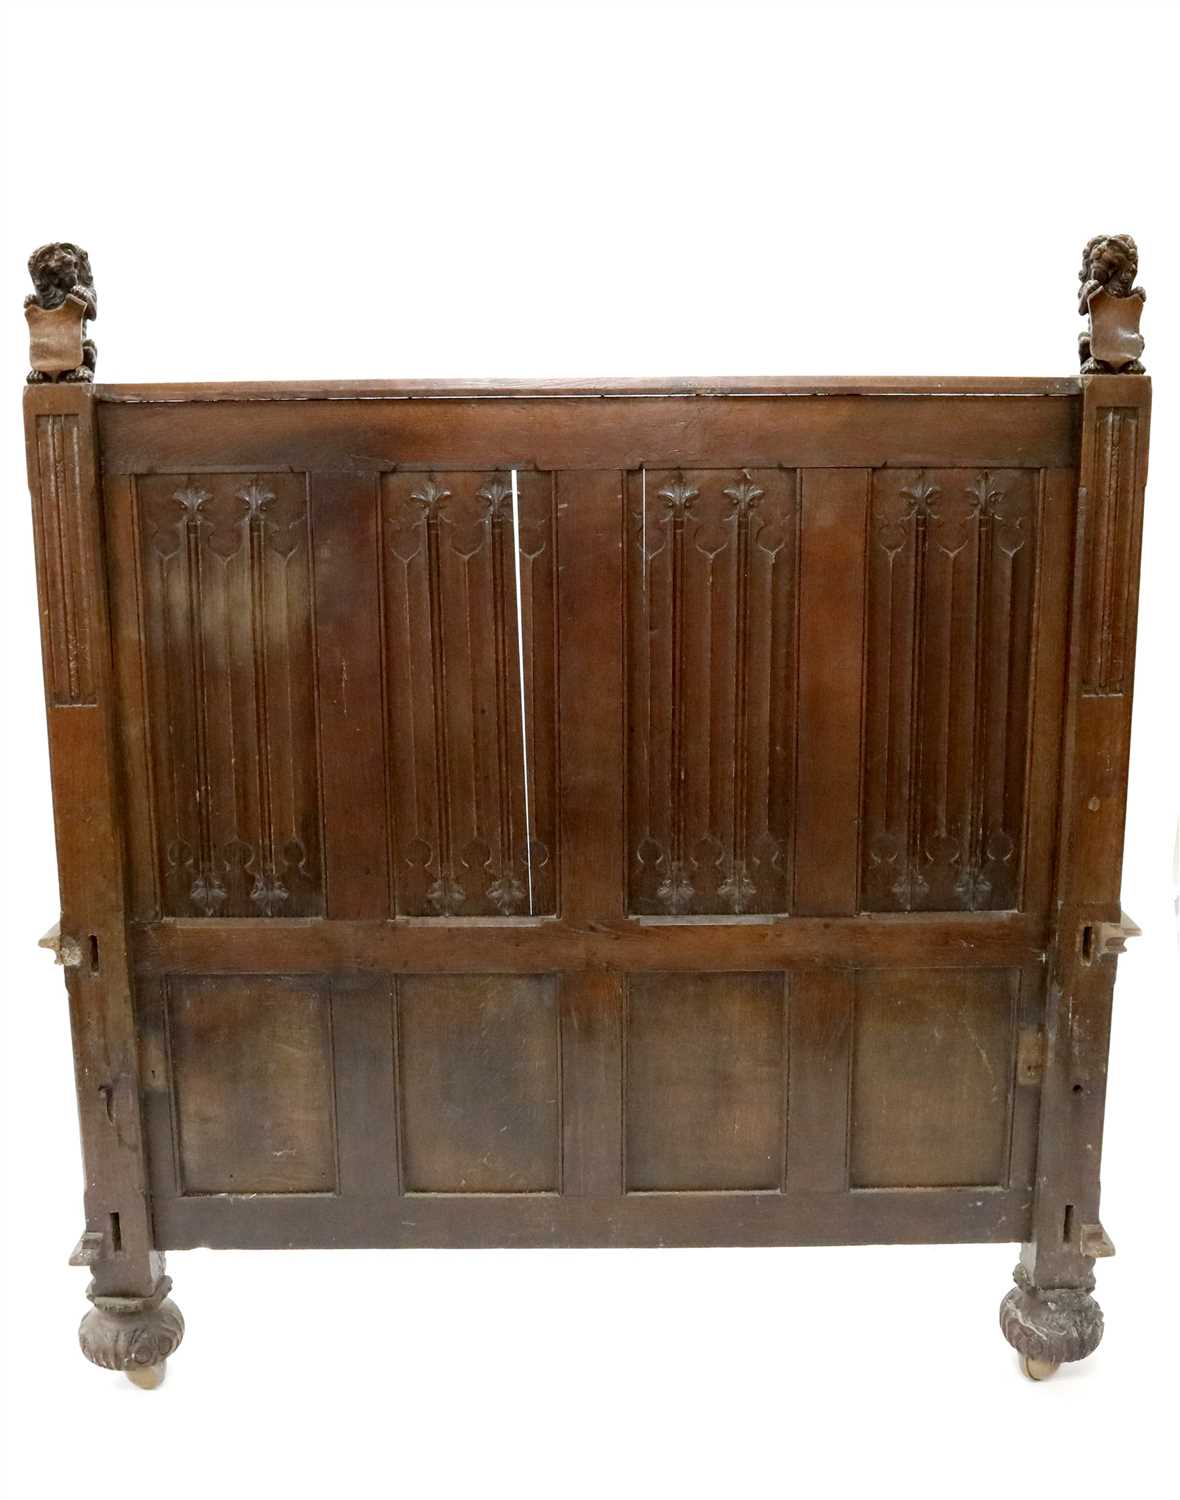 Lot 232-A large carved oak bed frame in the Old English style